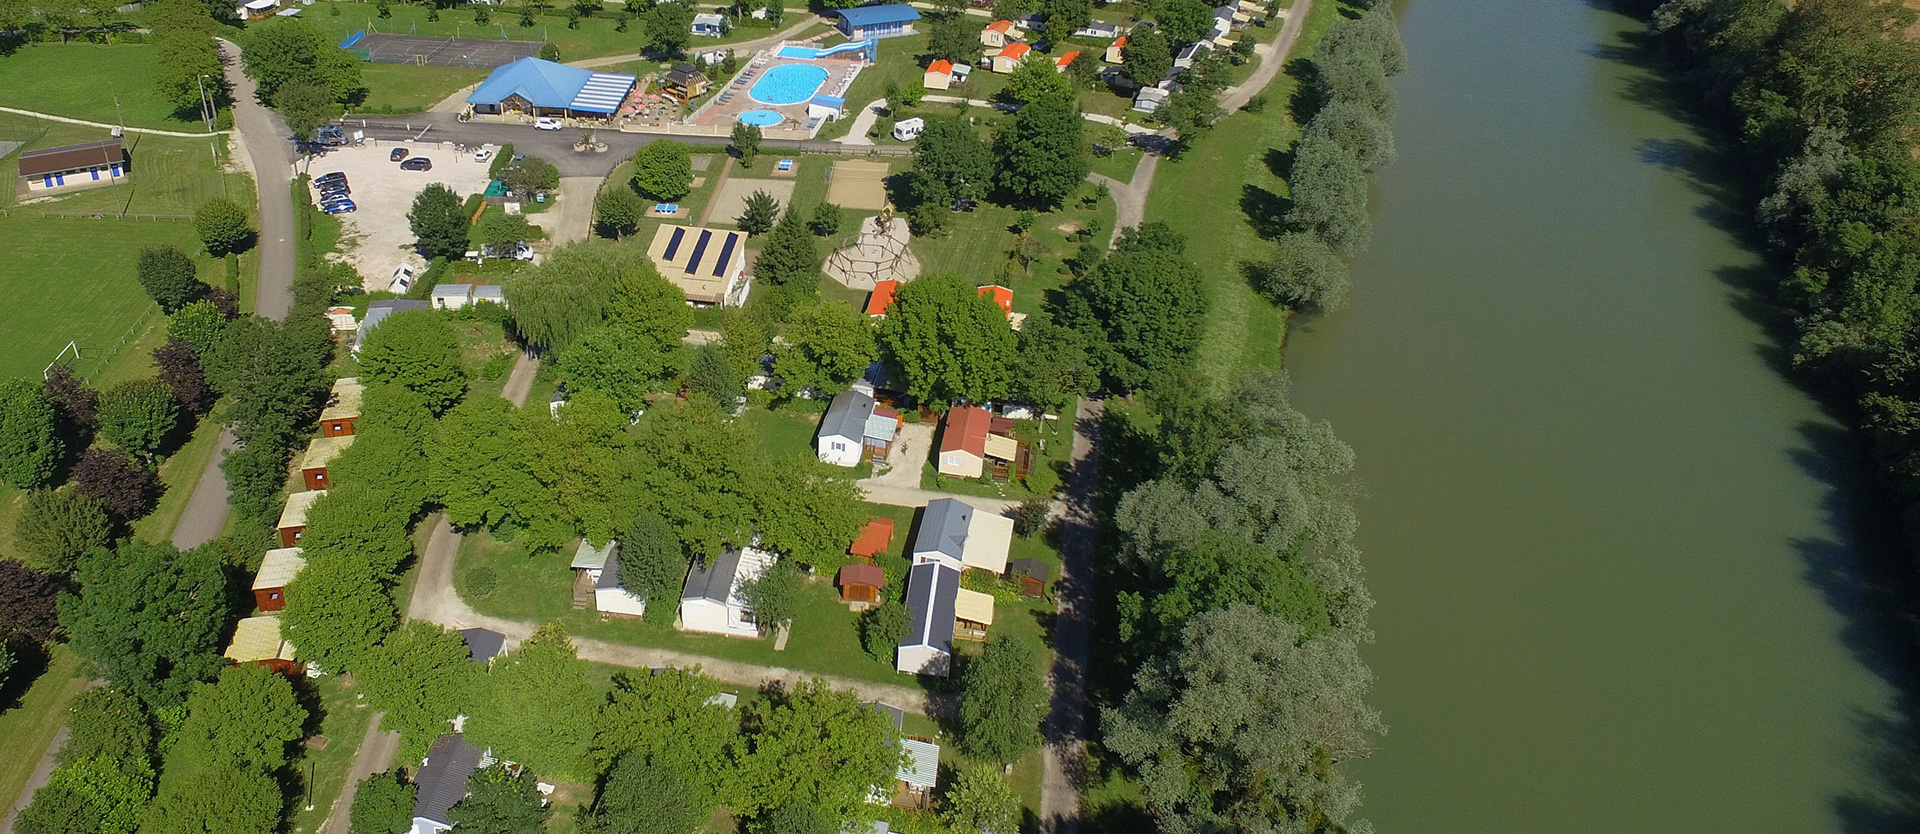 Aerial view of the campsite, cottage rental in the Jura